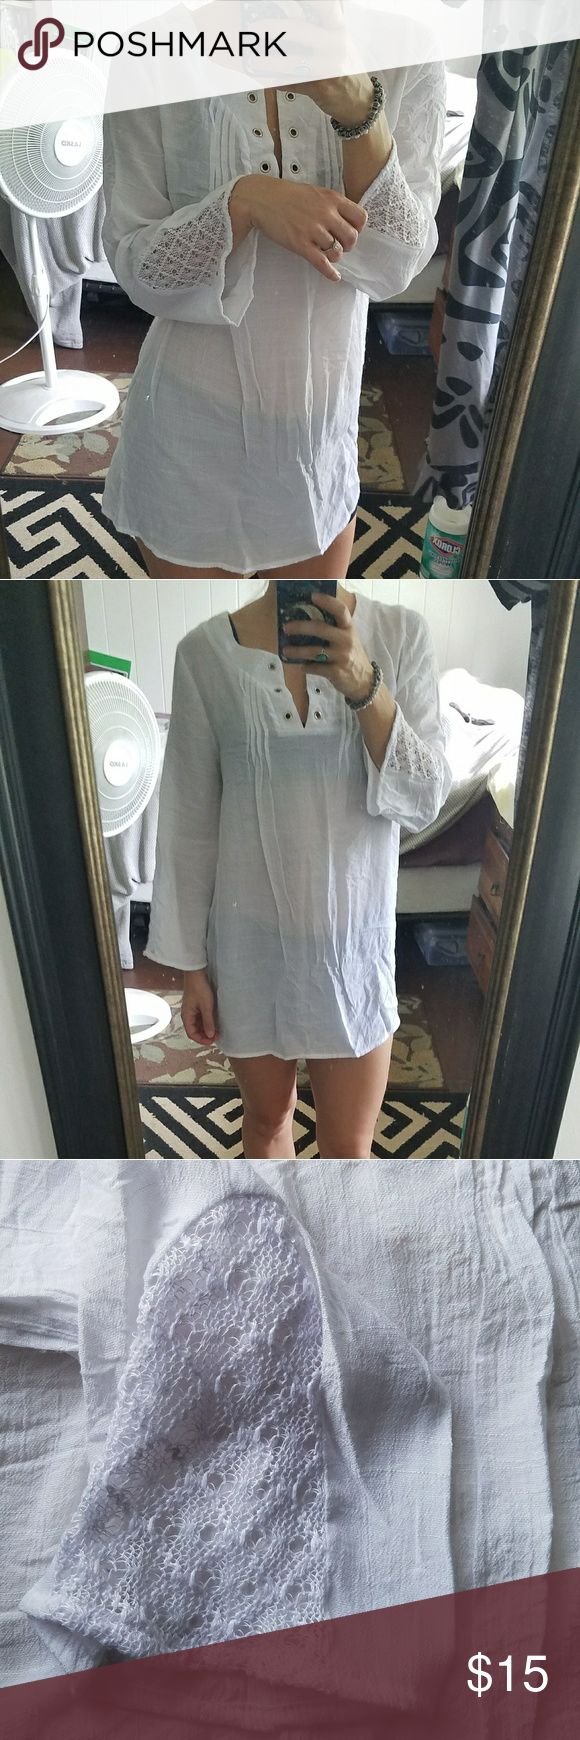 White, sheer, cover up, tunic, uniquely designed V-neck, split neck, with silver accents, crocheted sleeves, boho chic, dress or shirt depending on the figure, comfortable, cozy, dress up or down, swimwear, beachwear, long sleeves Hannah Tops Tunics